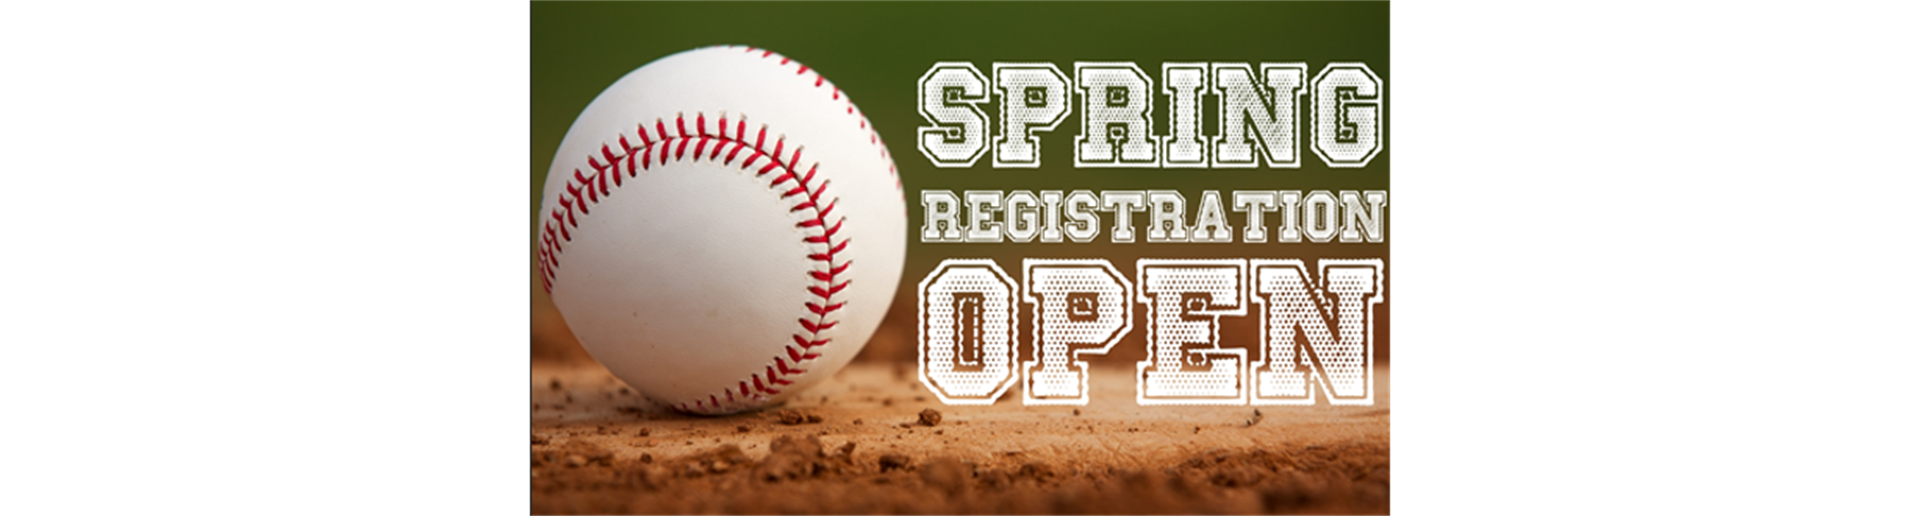 SPRING 2021 REGISTRATION IS NOW OPEN!